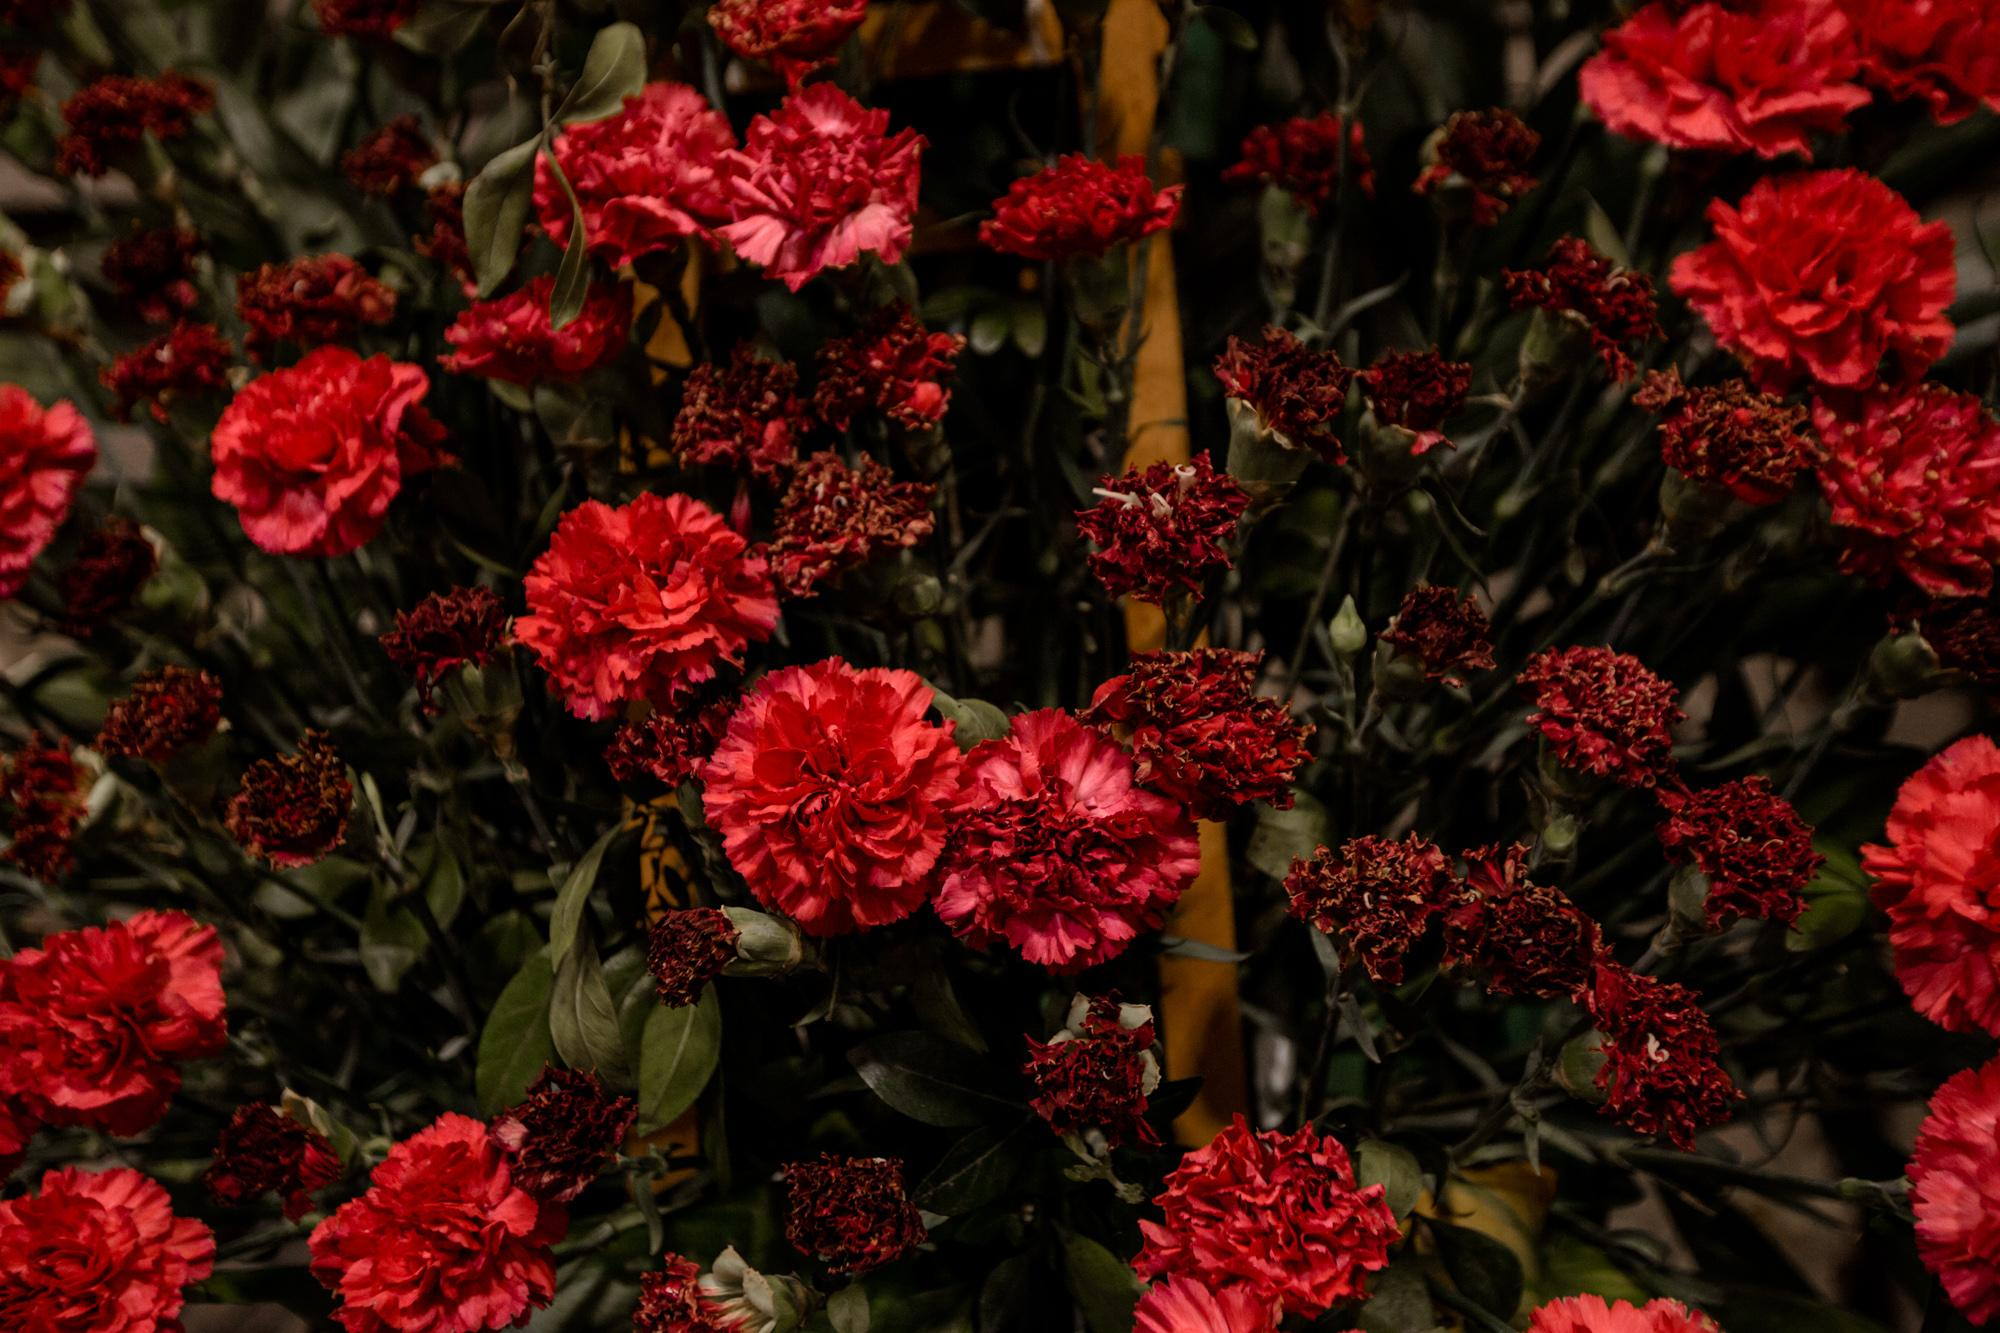 Red carnations are always the chosen flower for the Nazarenes to decorate the image of Jesus.